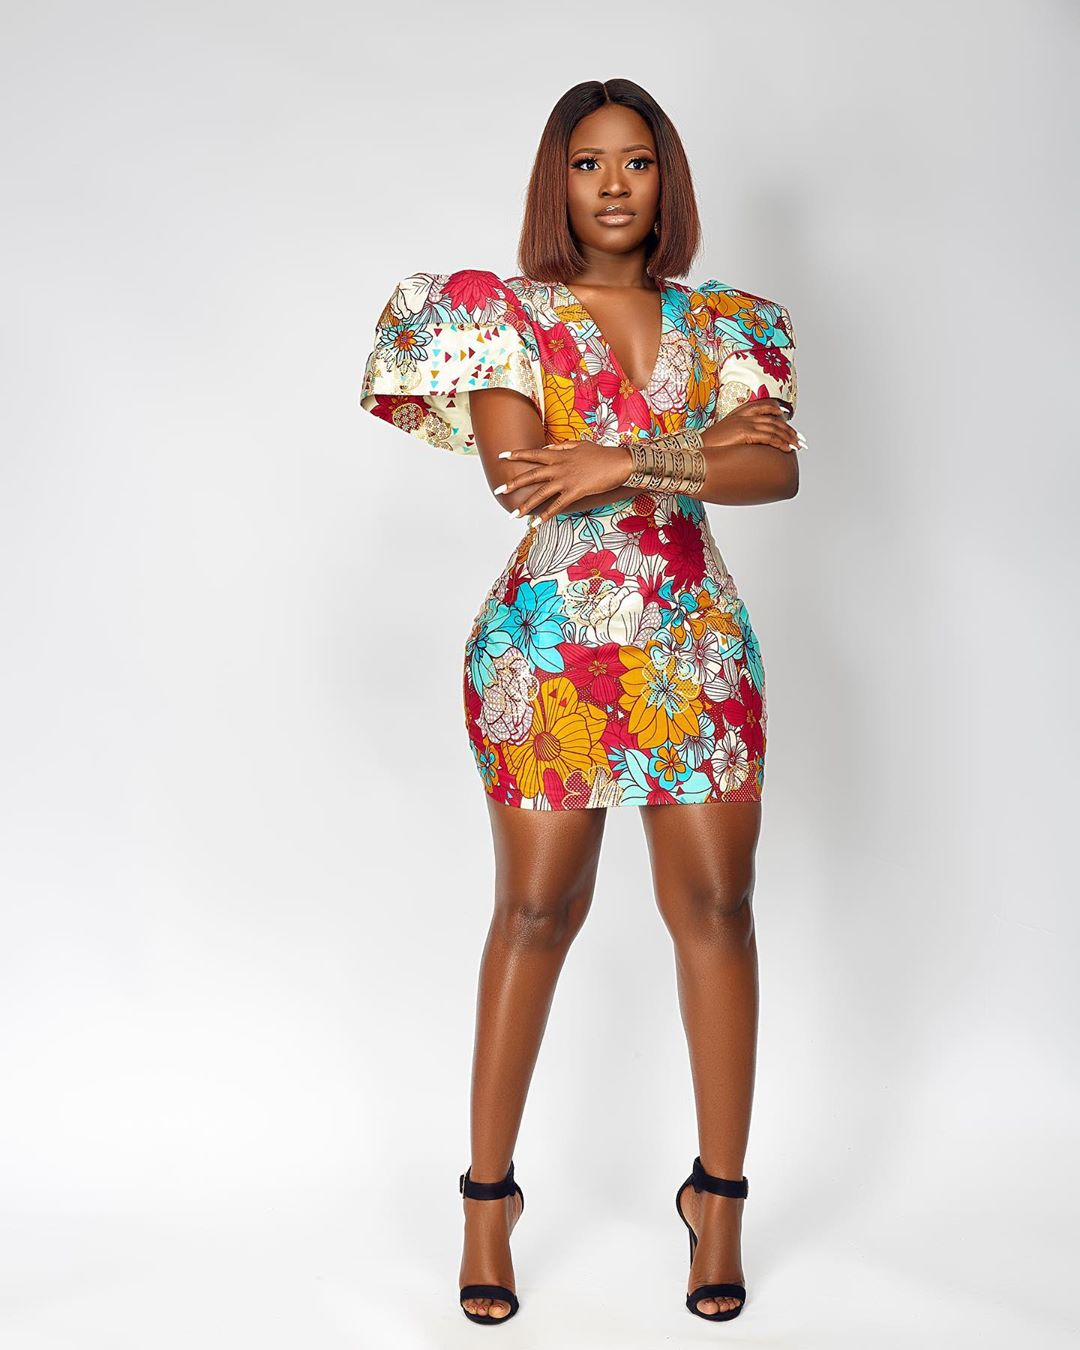 woodin-short-gown-styles-pictures